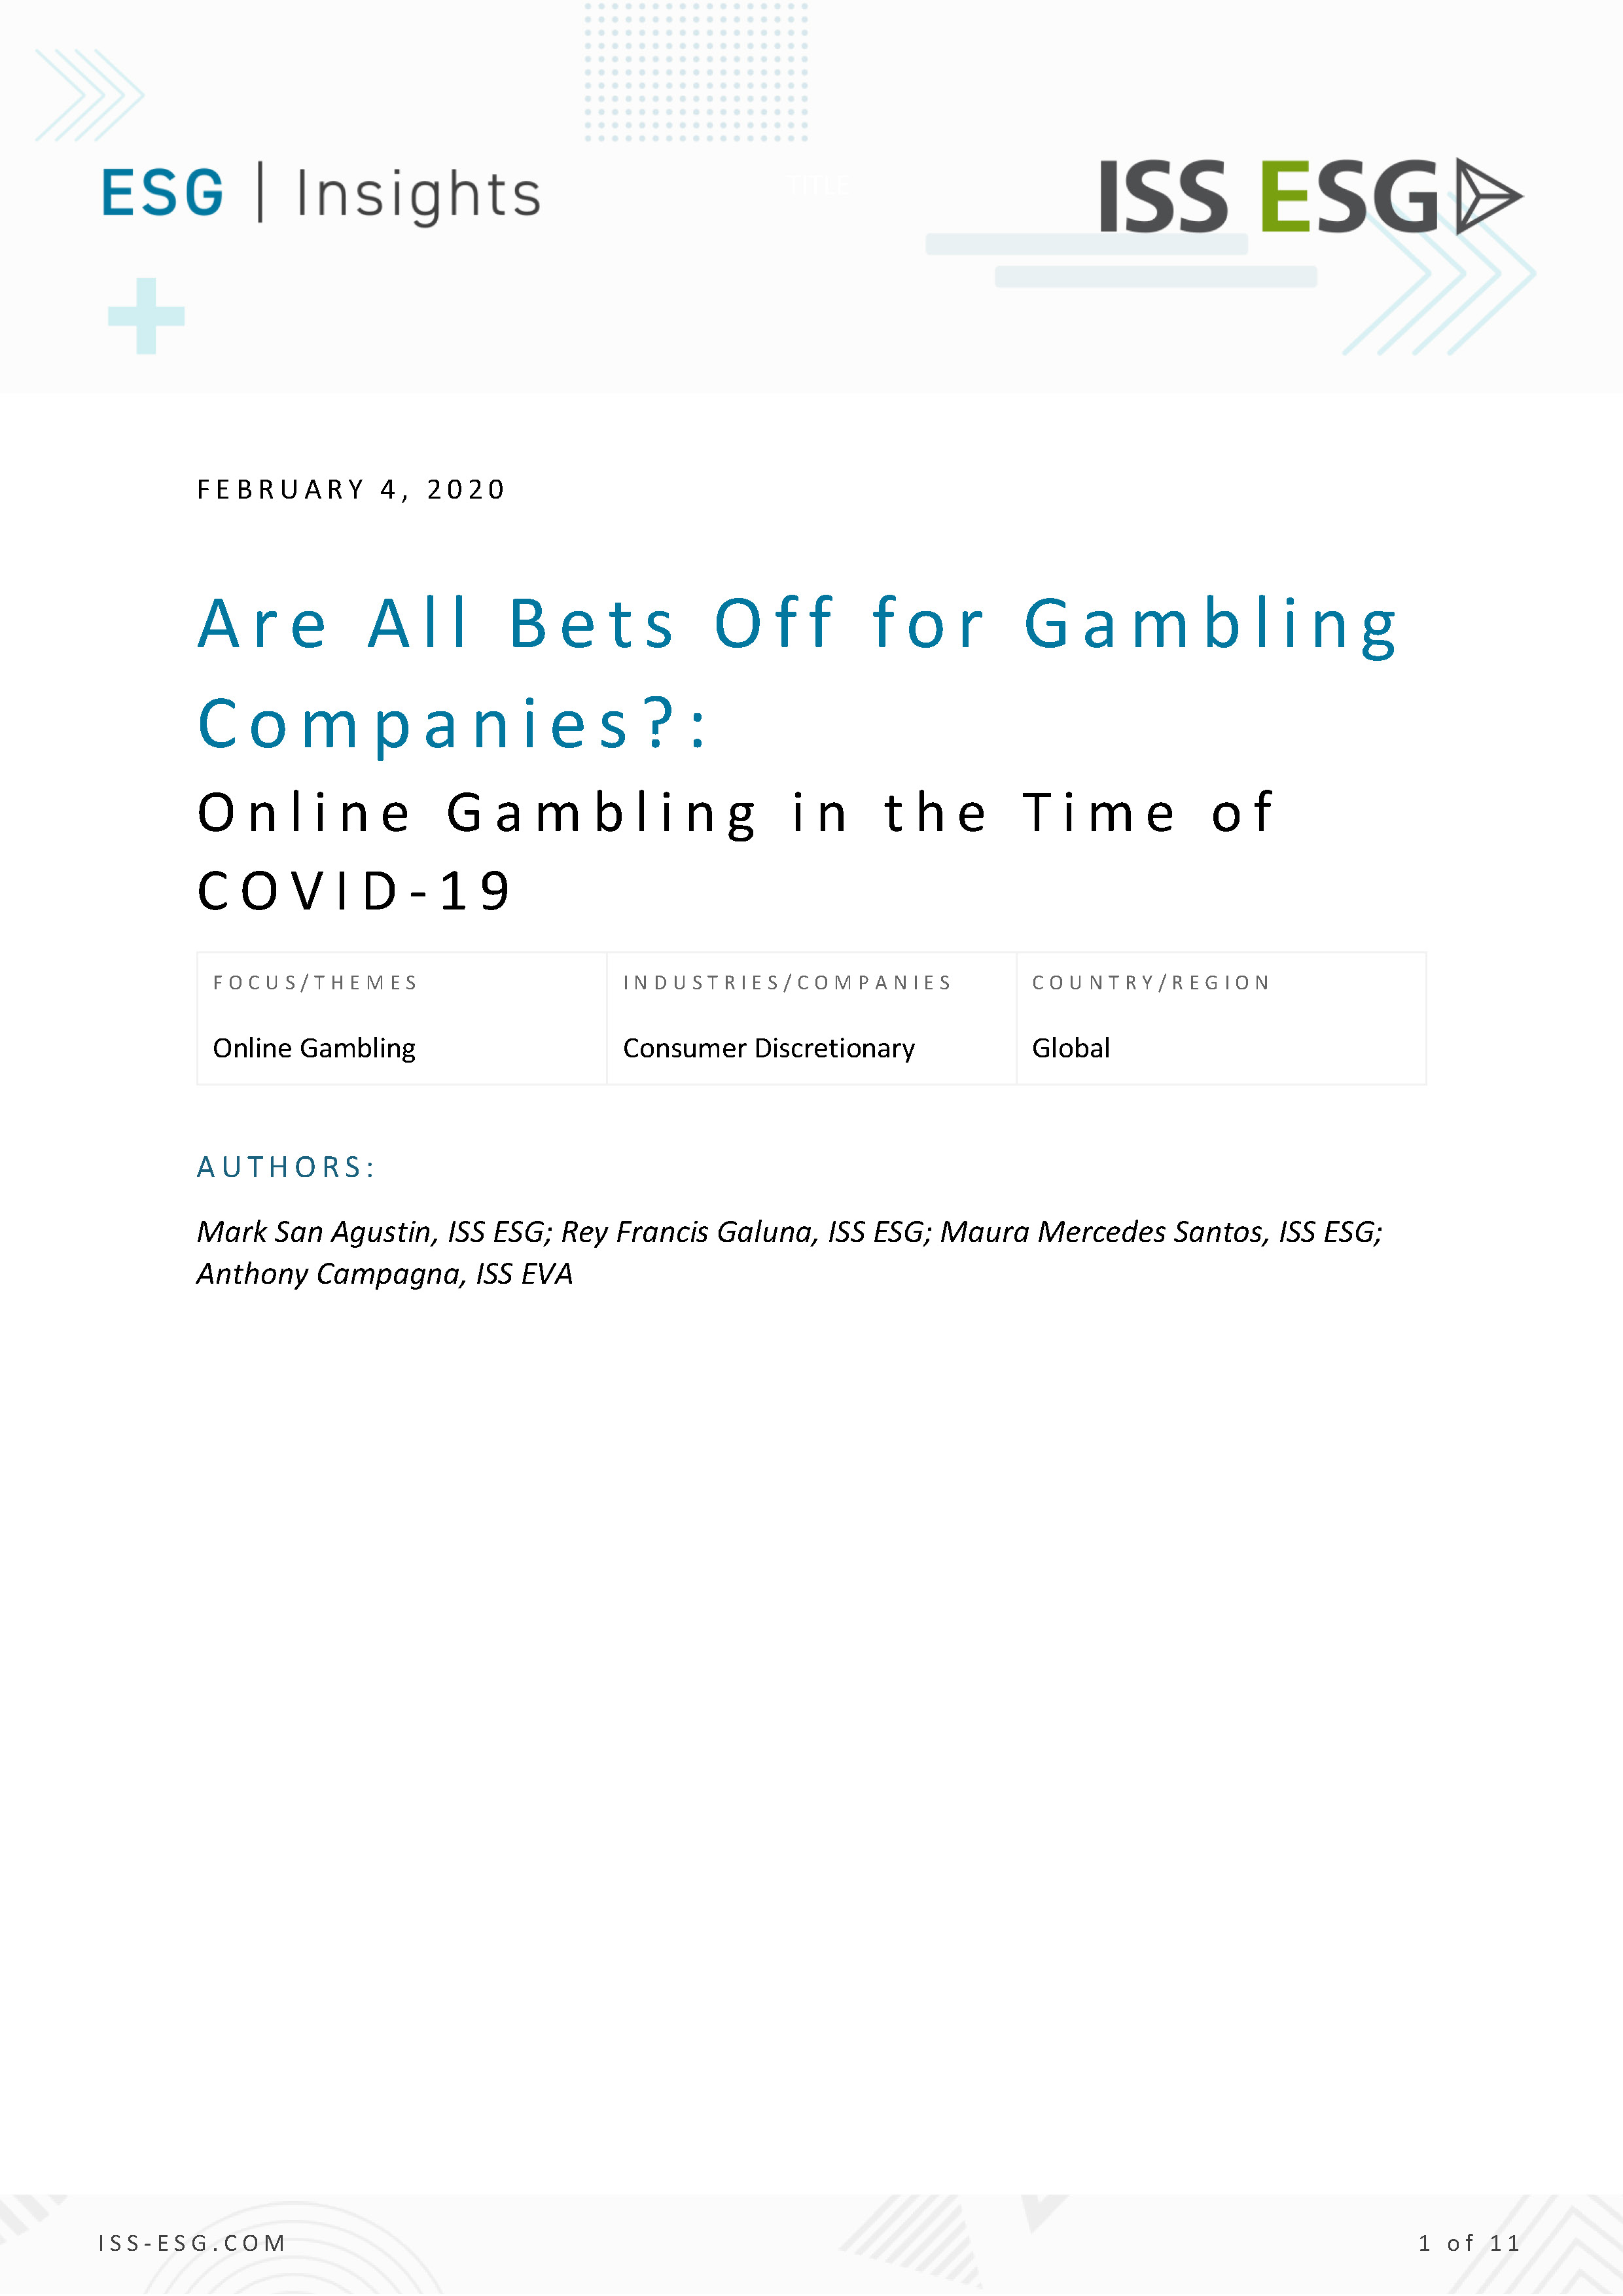 Are All Bets Off for Gambling Companies?: Online Gambling in the Time of COVID-19